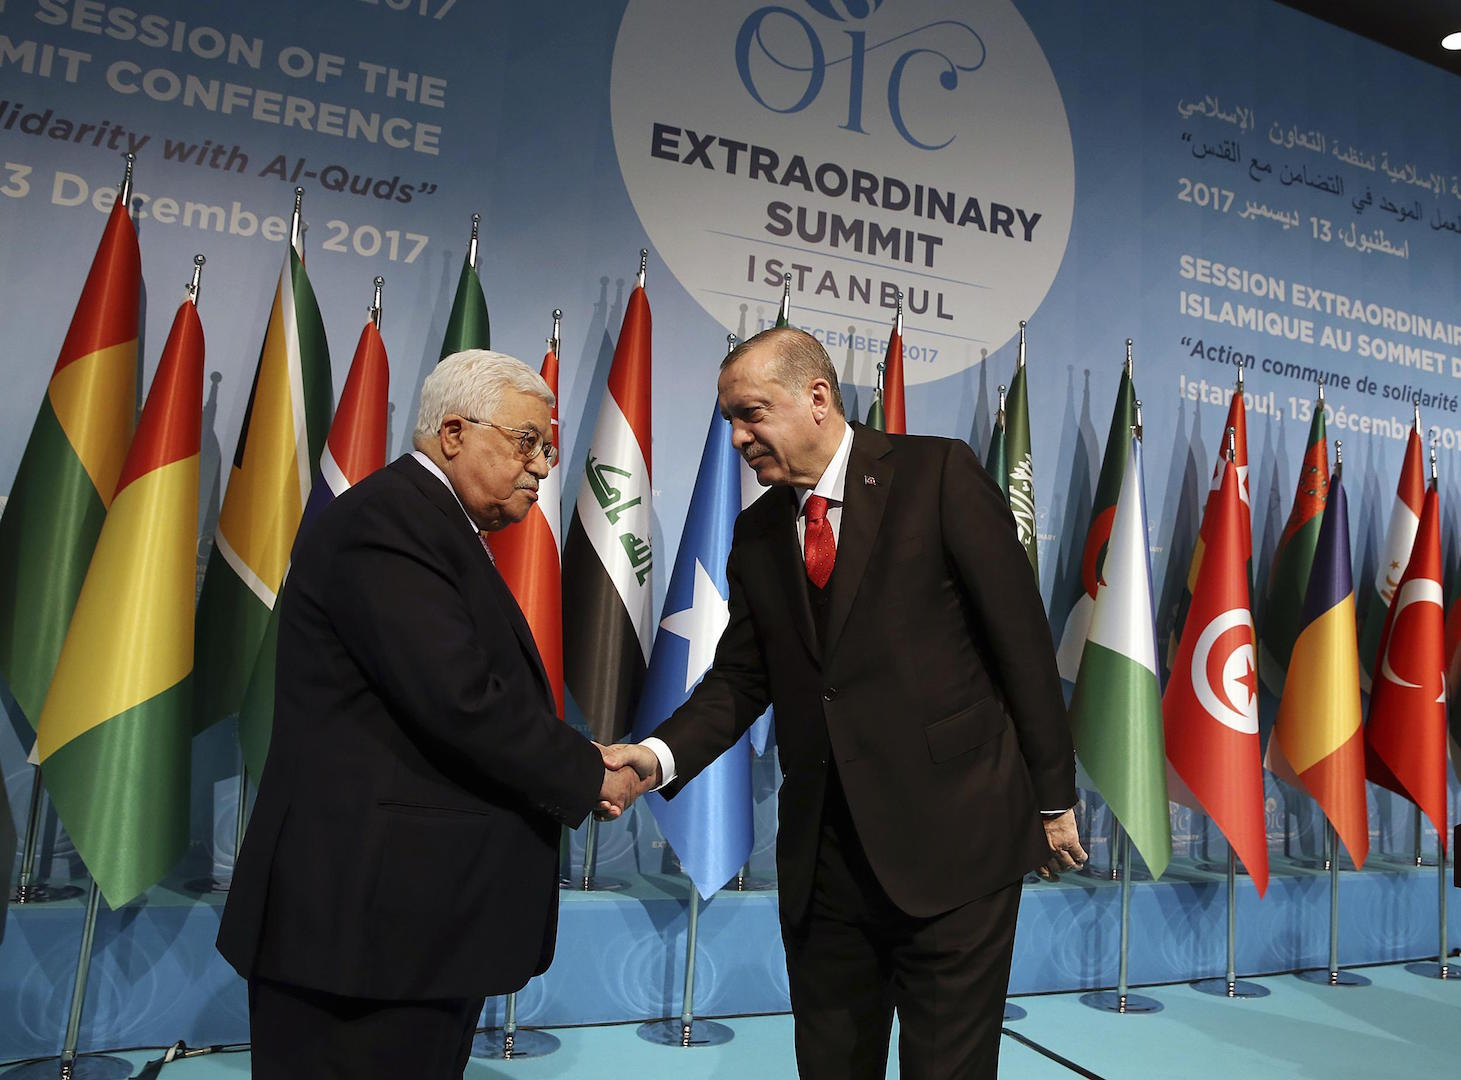 Istanbul: OIC extraordinary summit on Palestine, on Friday